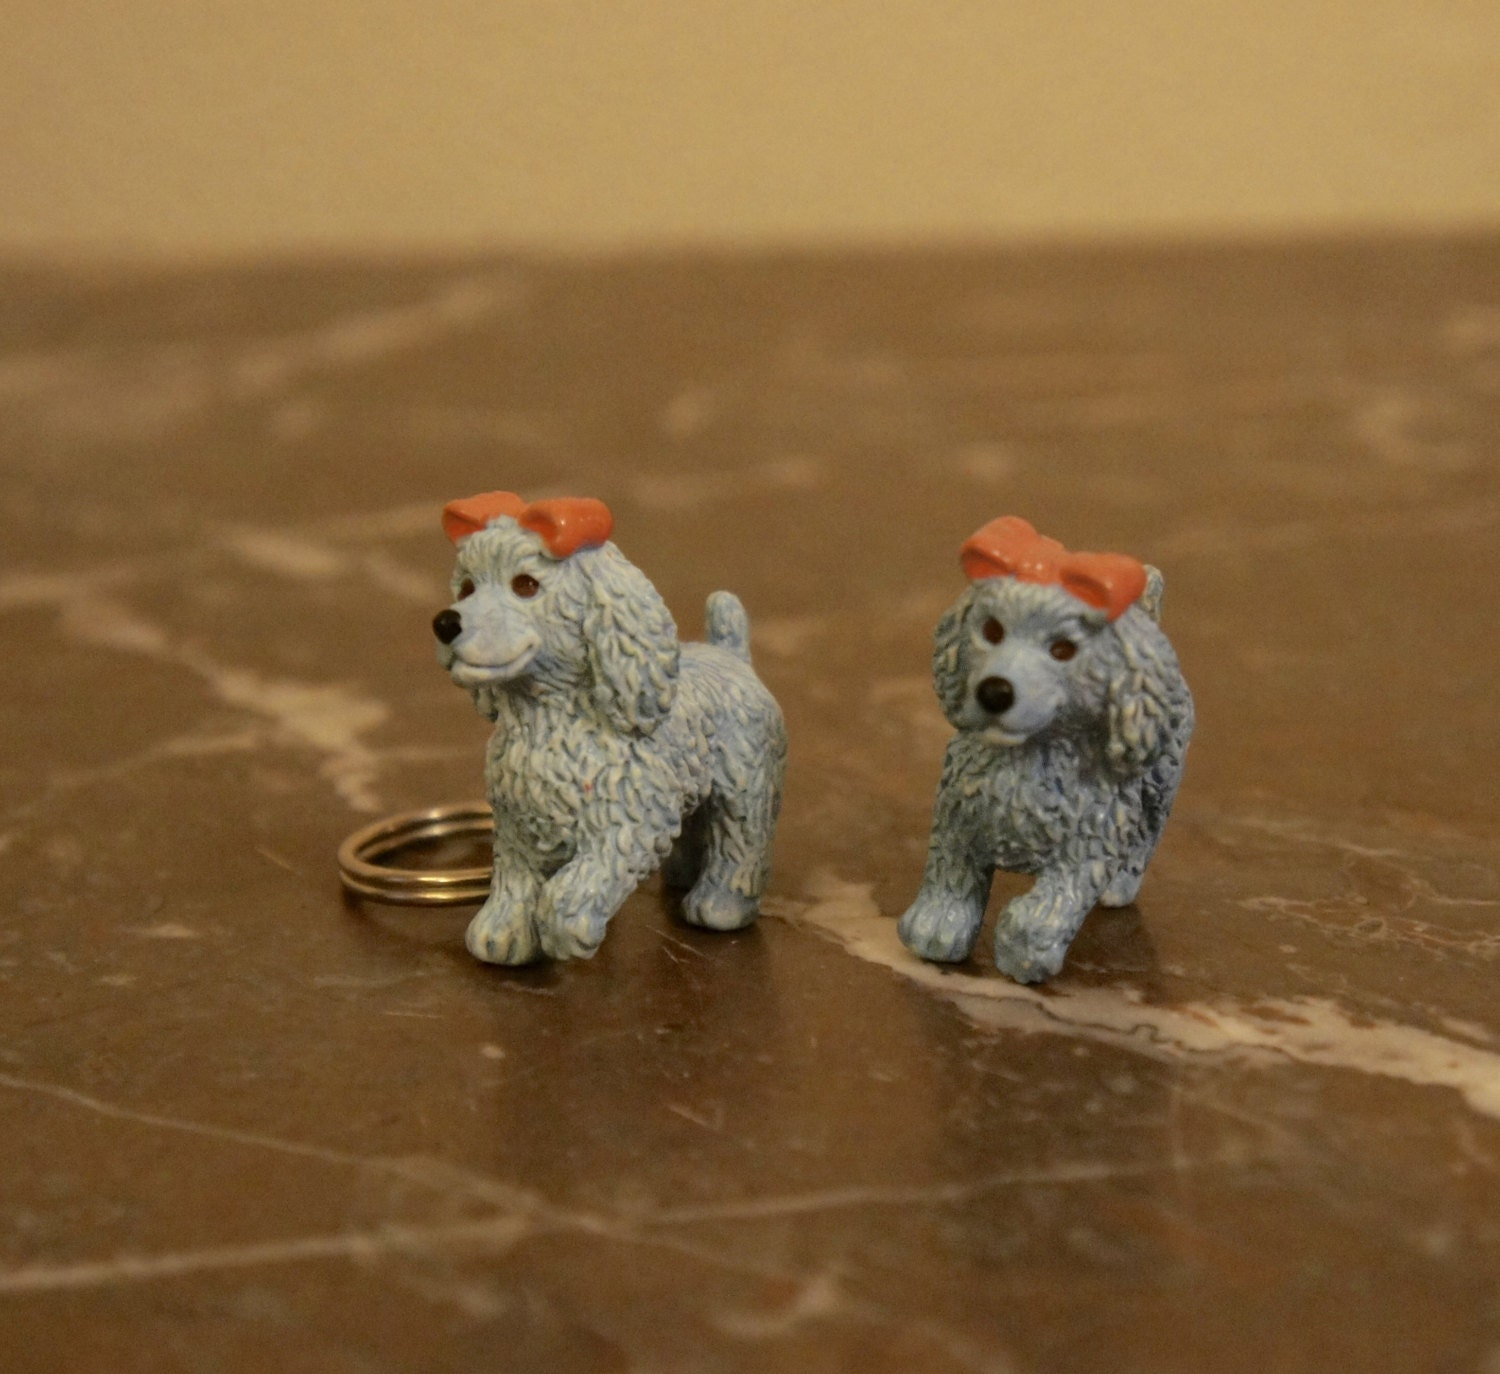 Two Vintage Puppy In My Pocket Toys Poodle Keyring And Figure 1994 Collectible Gift Retro Sister Daughter Girlfriend Friend Birthday